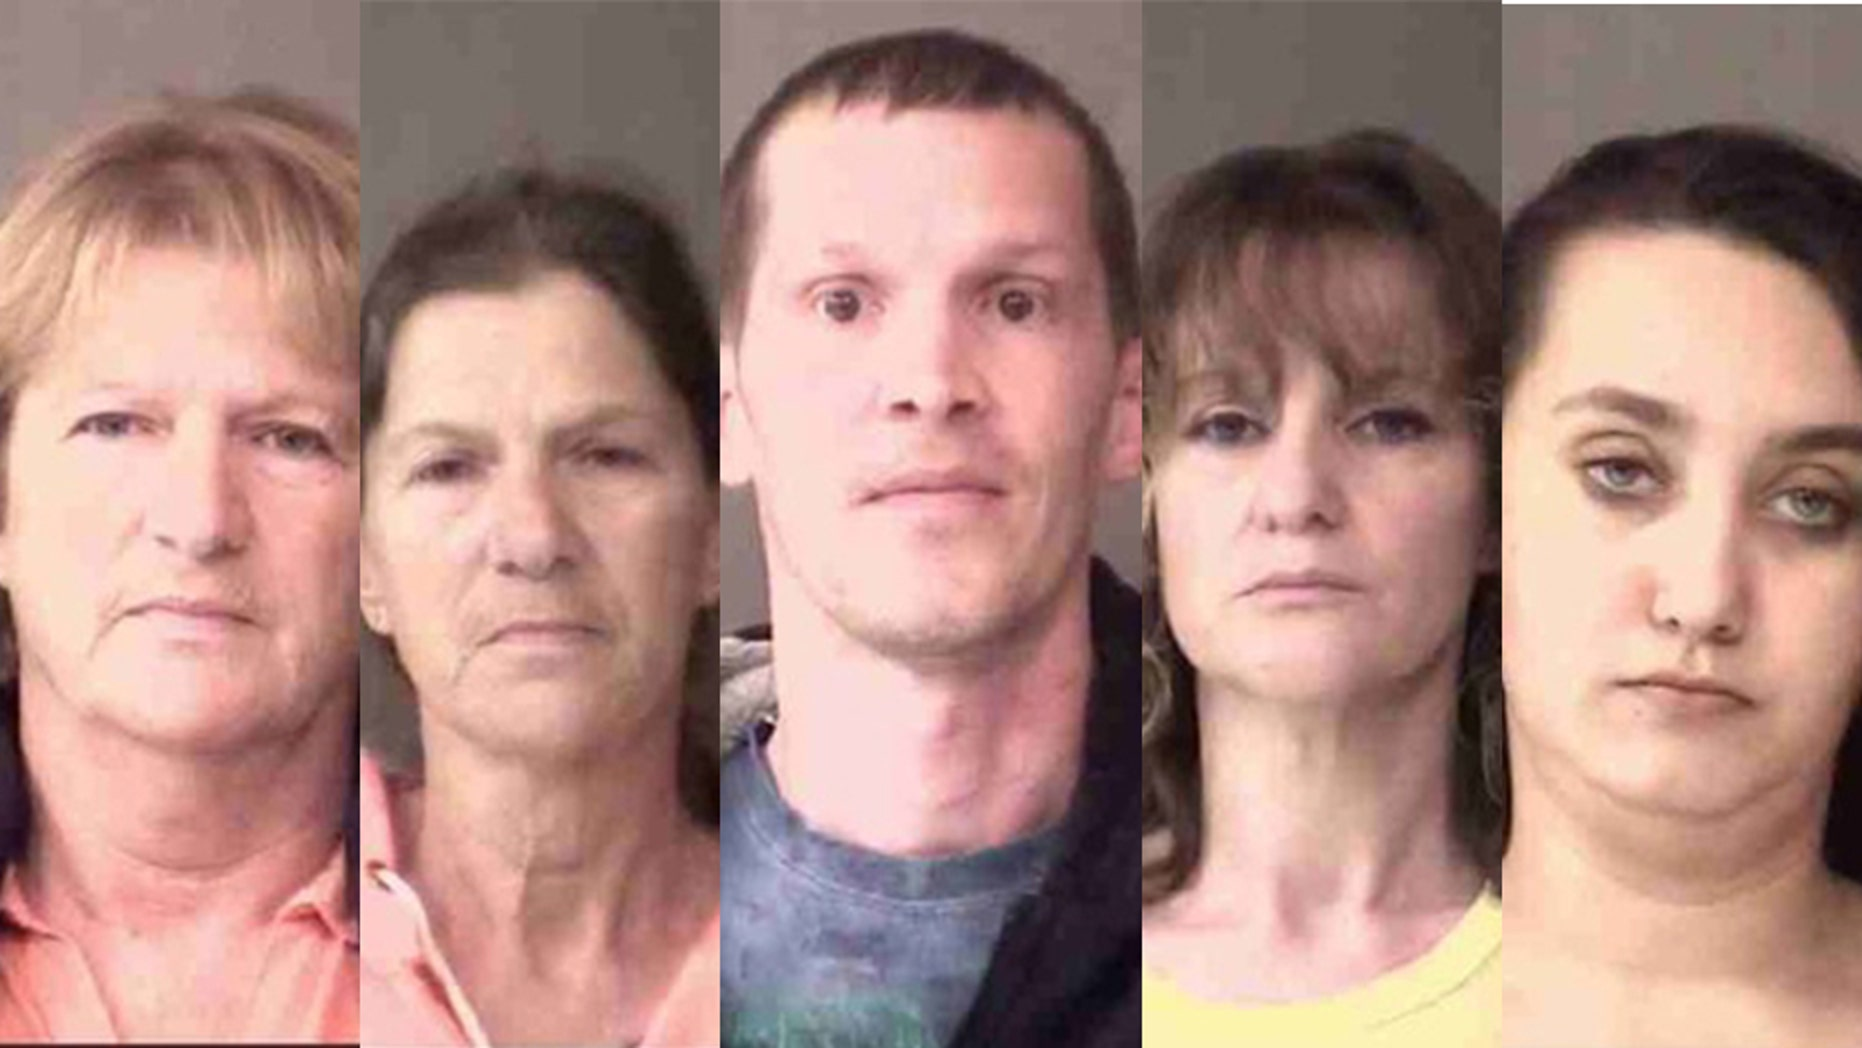 Police in Indiana charged, from left,Annette Priestly, Fayette Robinette,Travis Tillotson,Jammy Stacy andRune Springer withfelony neglect of a dependent after a boy was found injured andseverely malnourished.